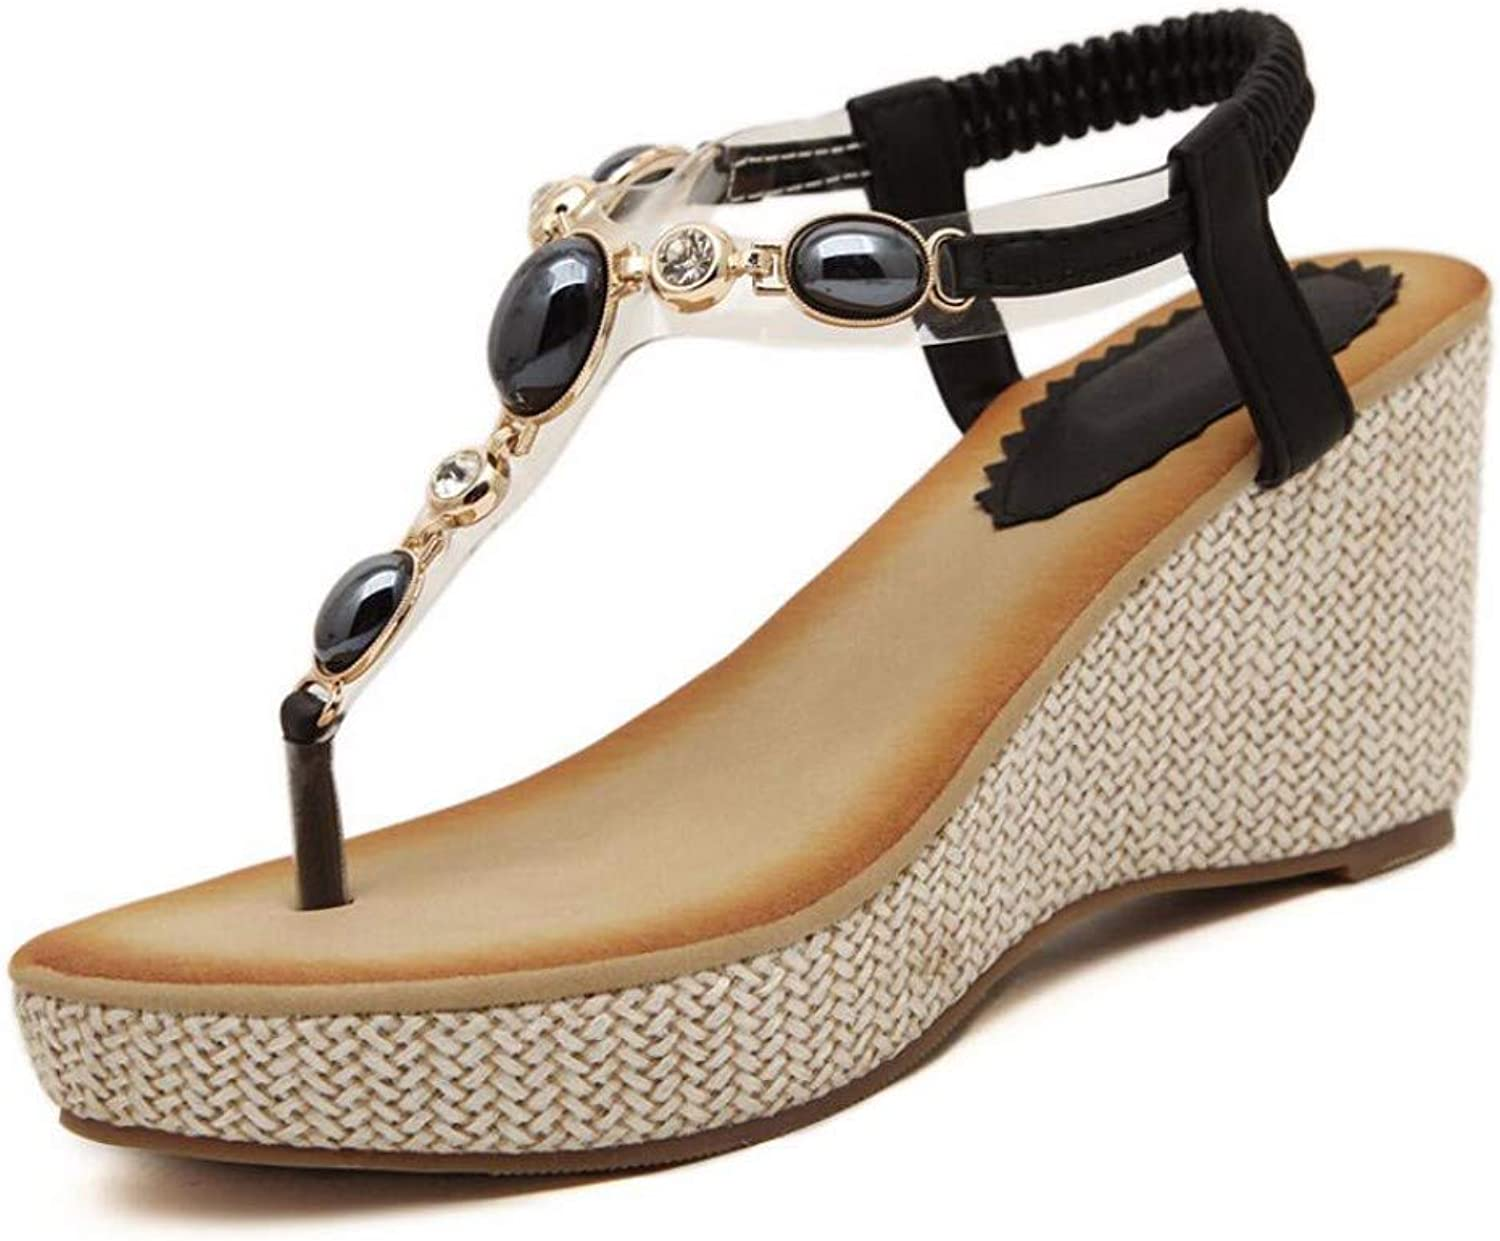 ZPSPZ sandals womens Lady Slope-Heeled Summer Open-Toed Sandals Bohemian Drill-in Girls'shoes